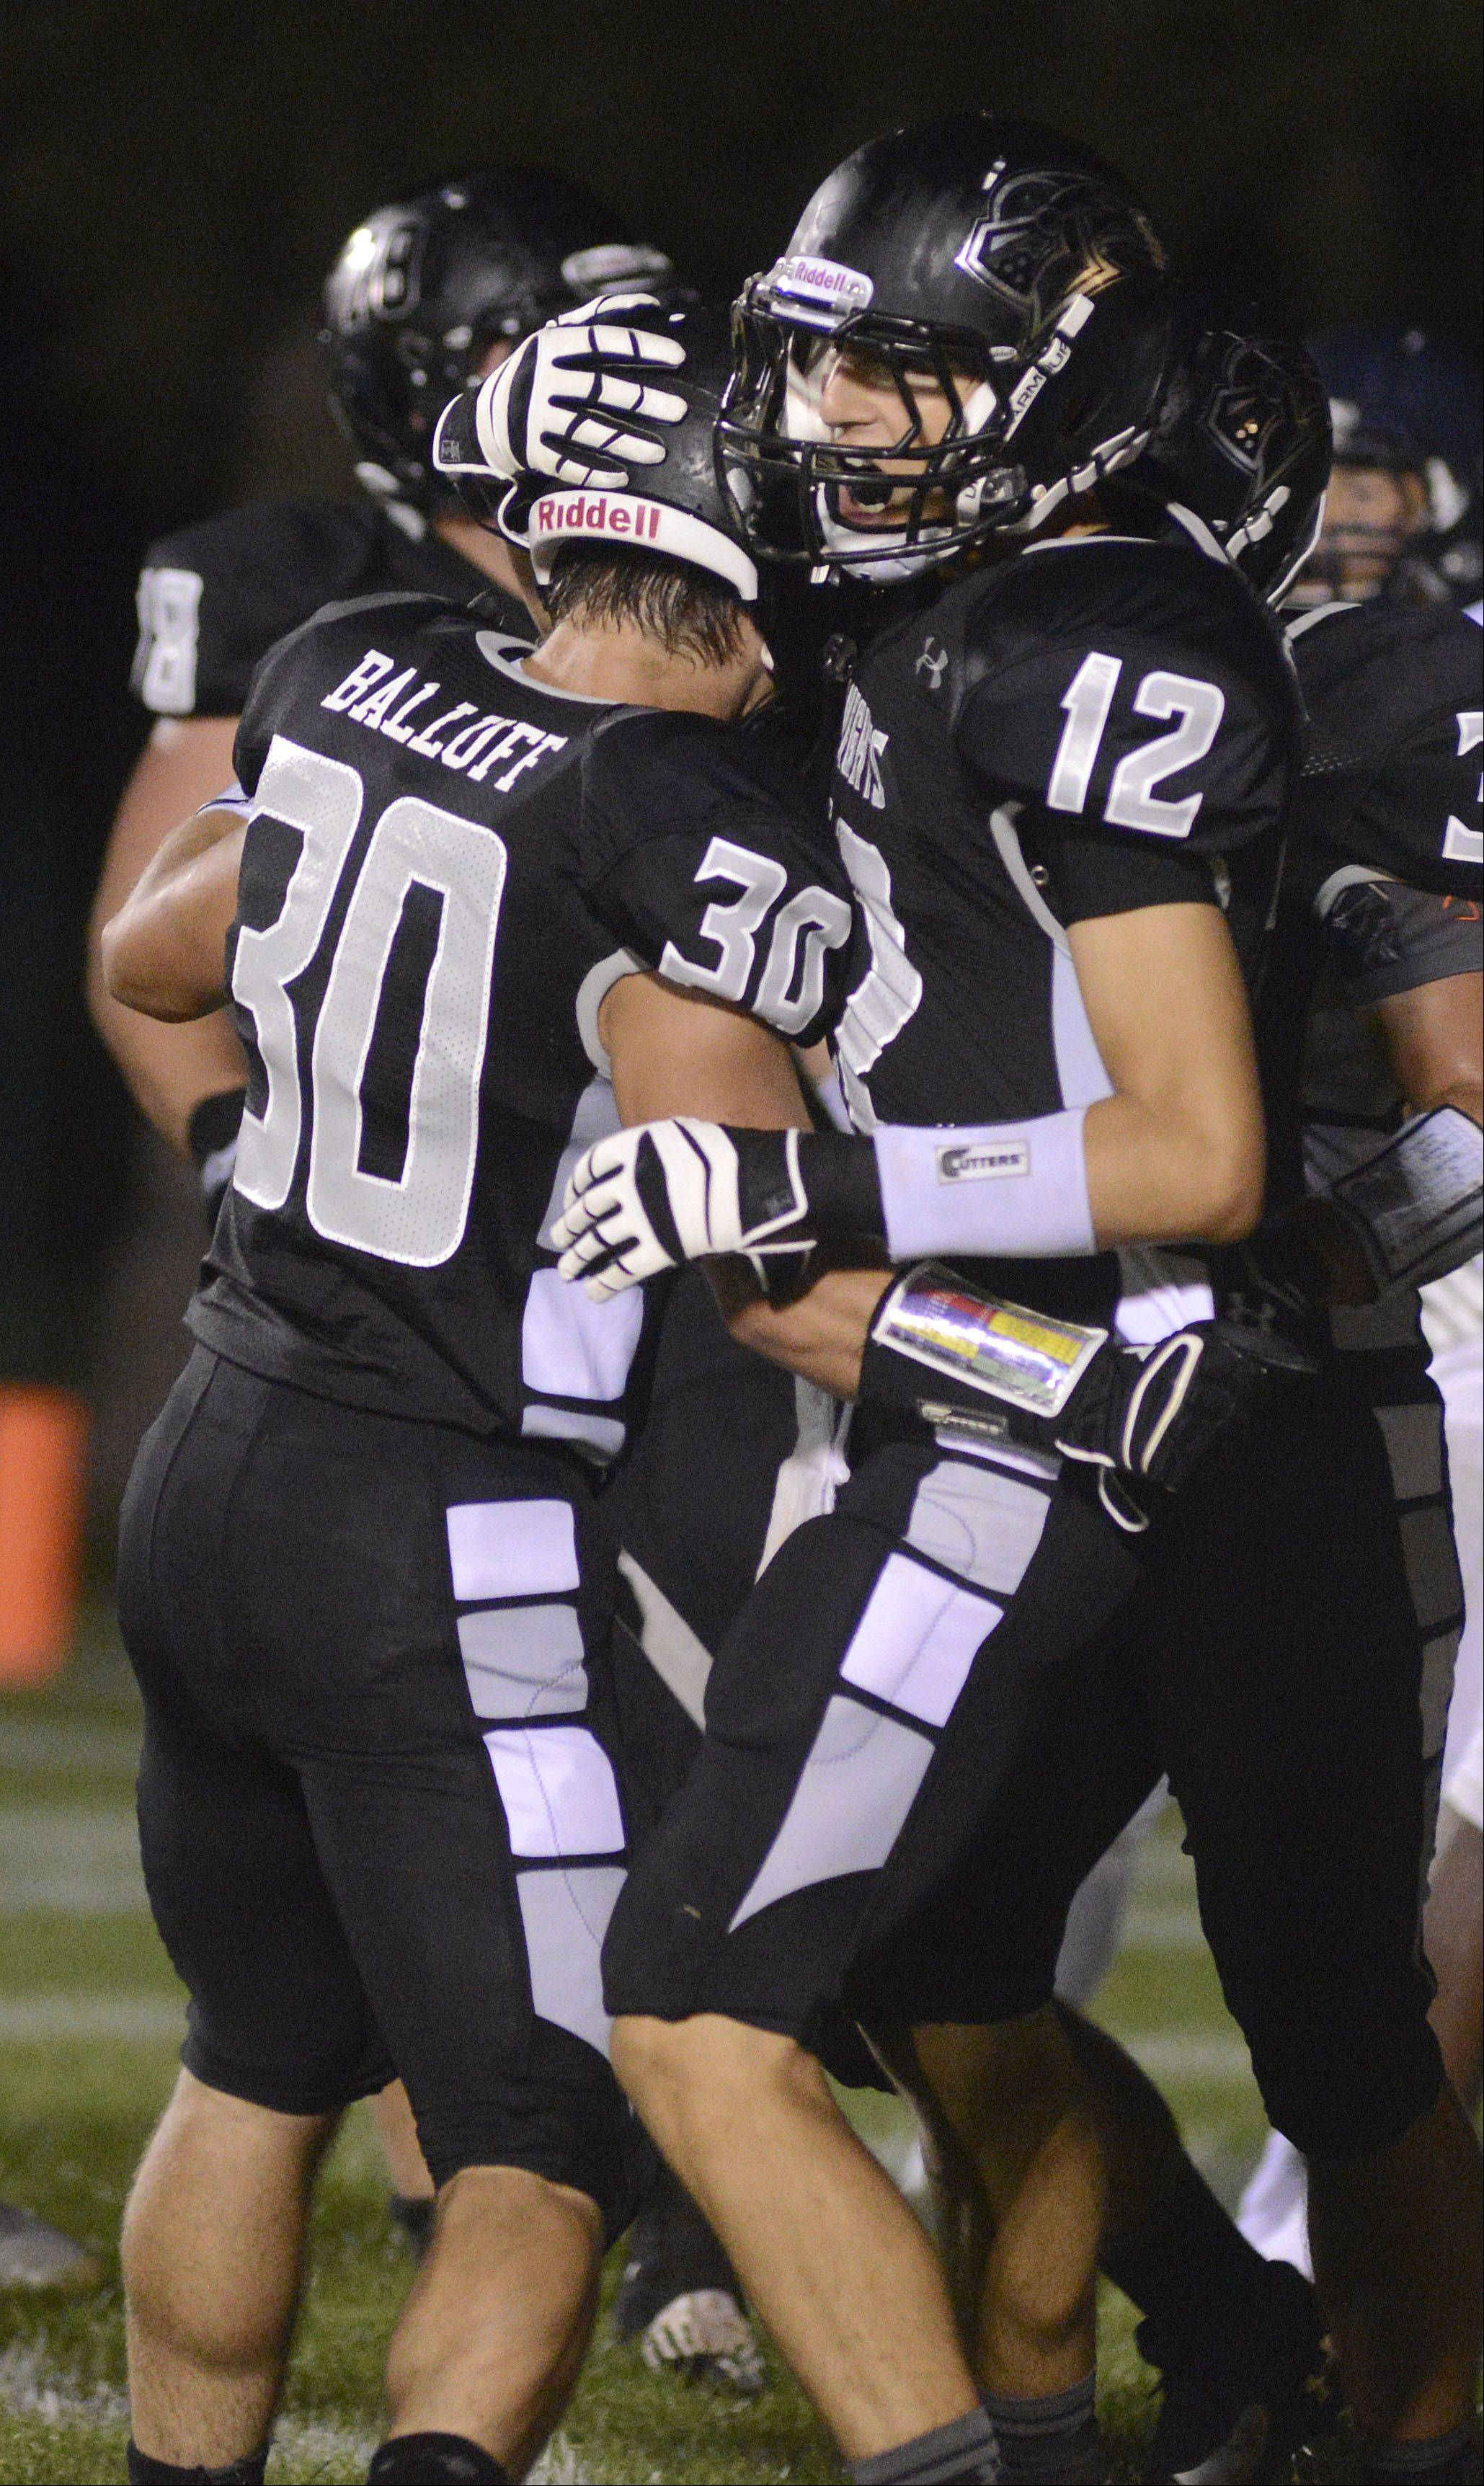 Kaneland's Jesse Balluff is congratulated on a touchdown by teammate Kevin Fuchs in the second quarter.